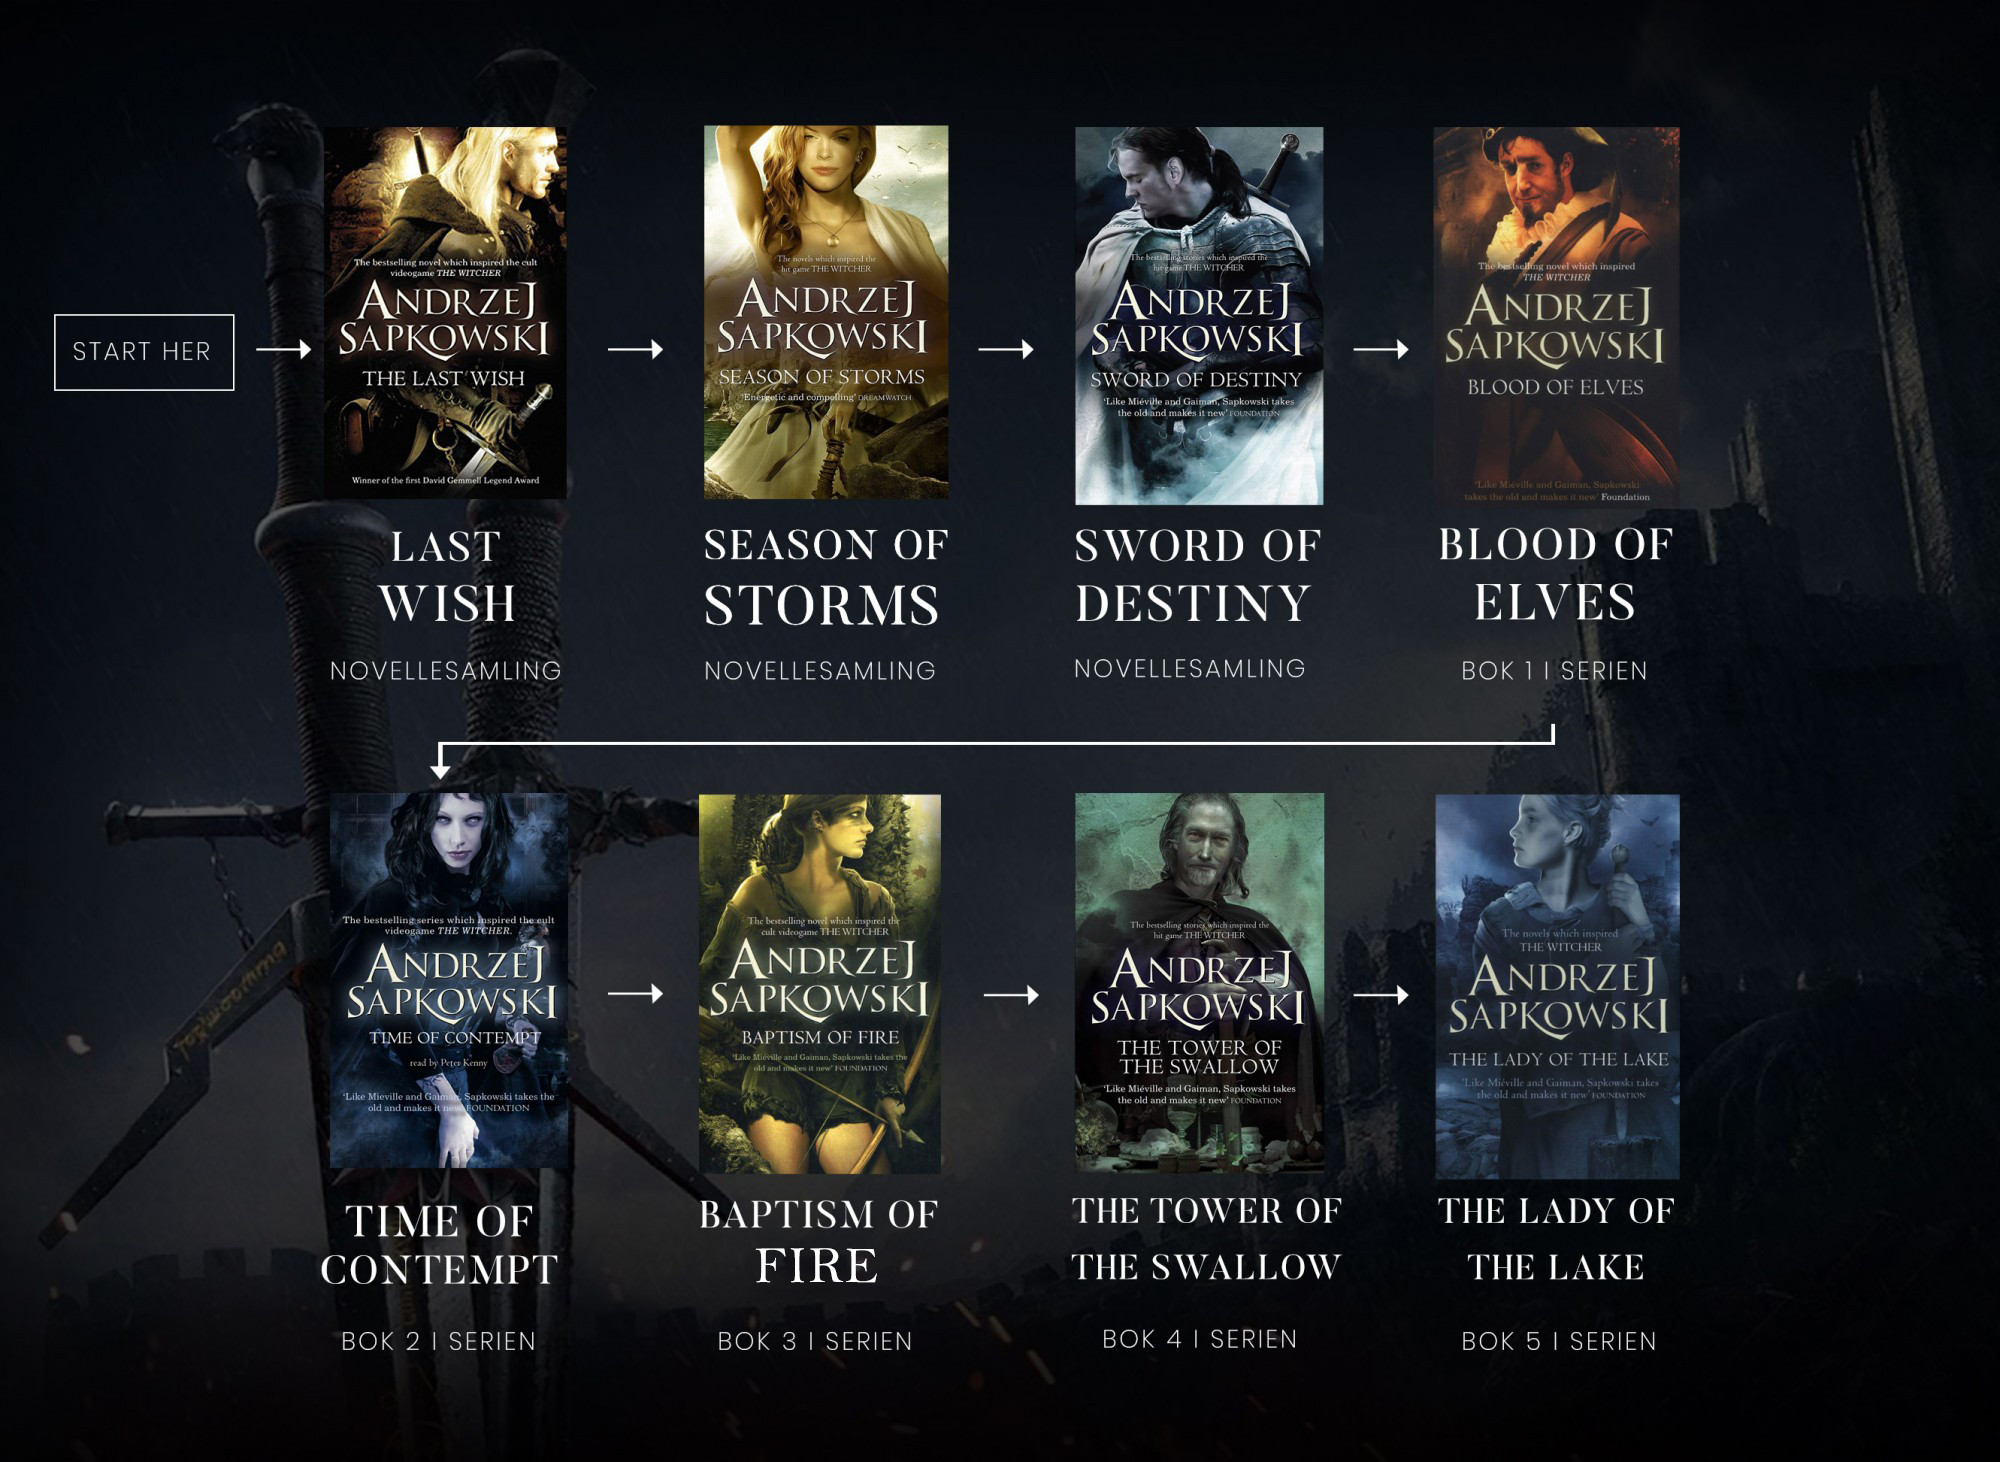 The Witcher recommended reading order